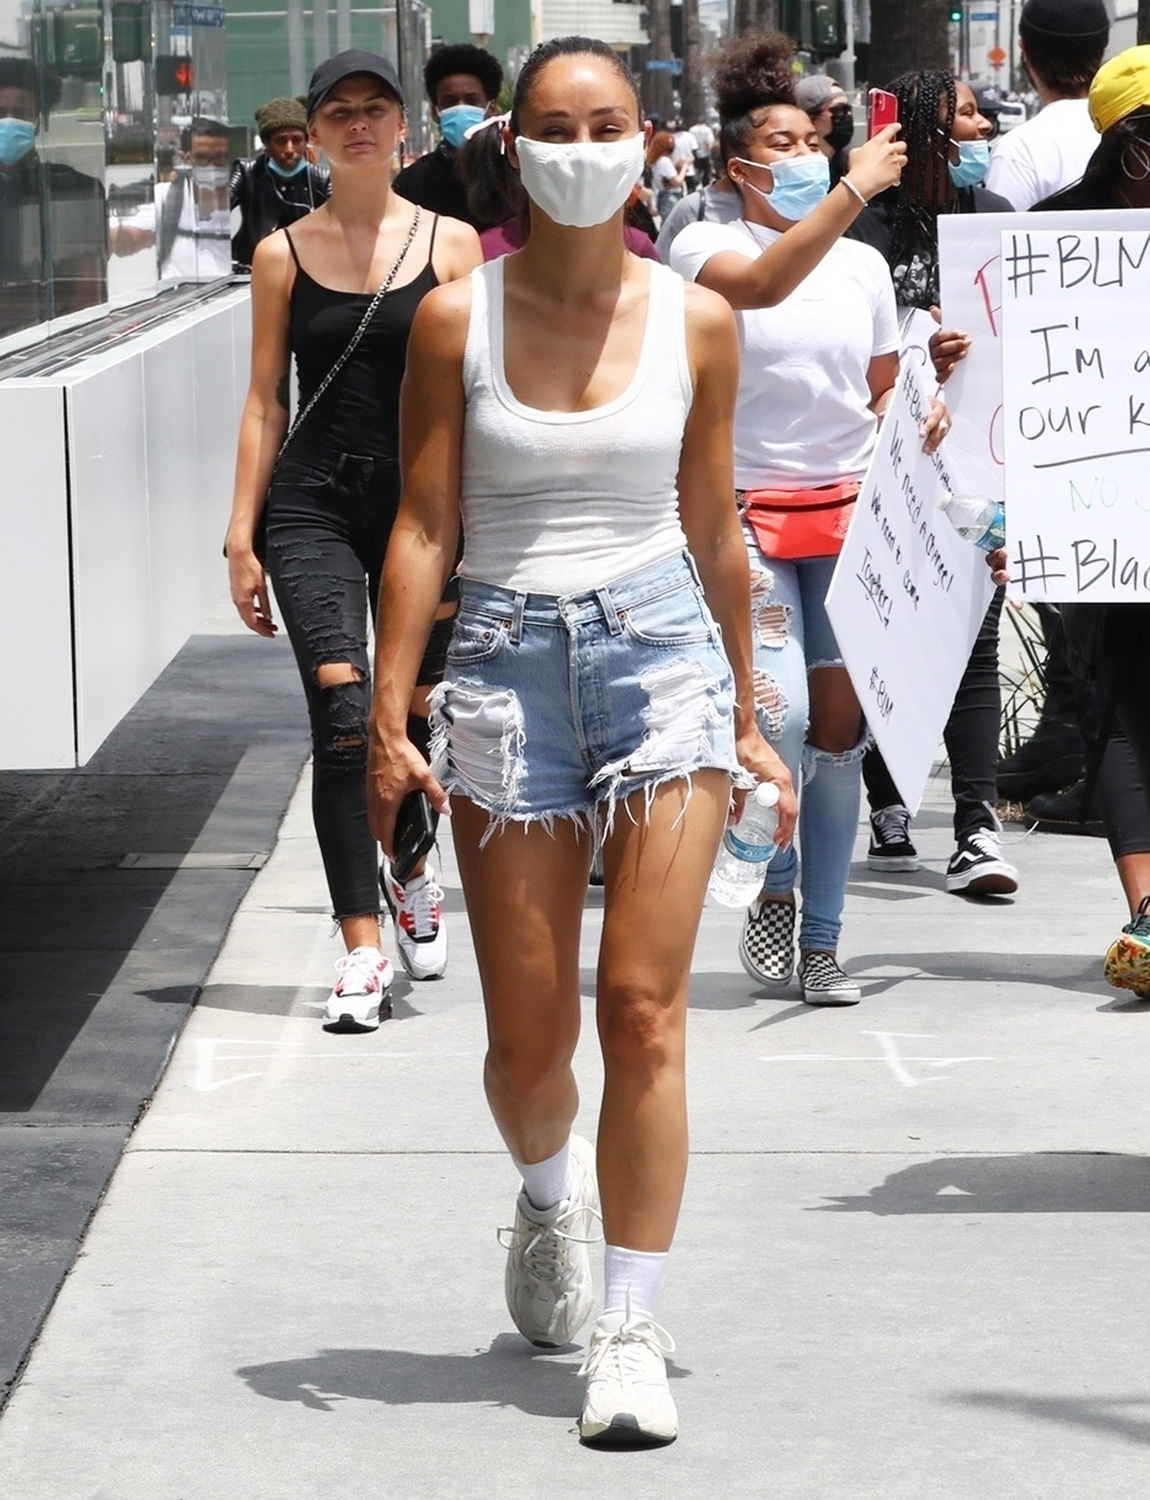 Cara Santana and her friends join the continued protest today held in LA